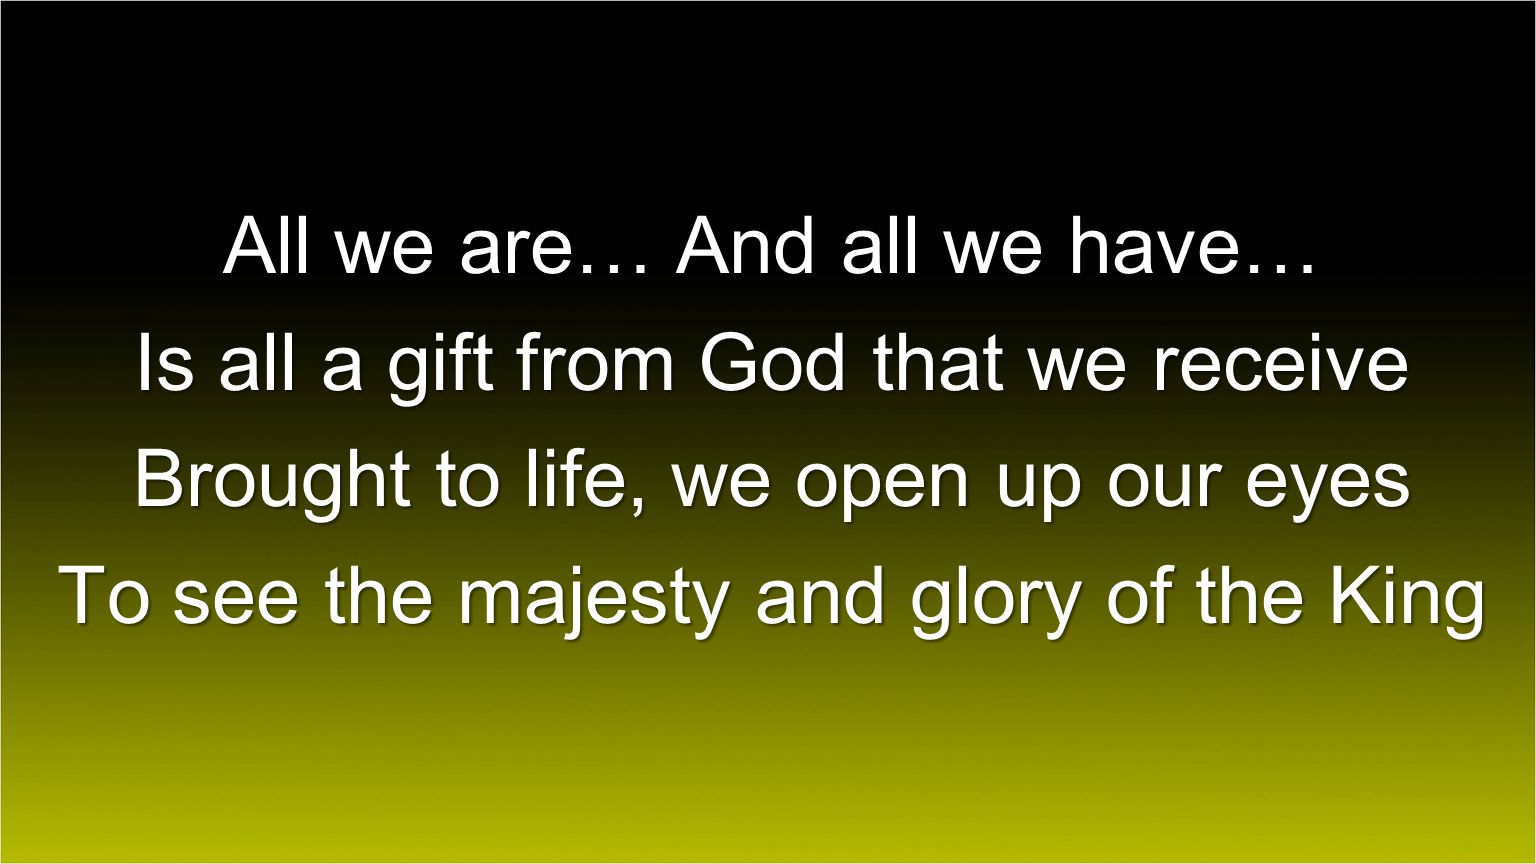 All we are… And all we have… Is all a gift from God that we receive